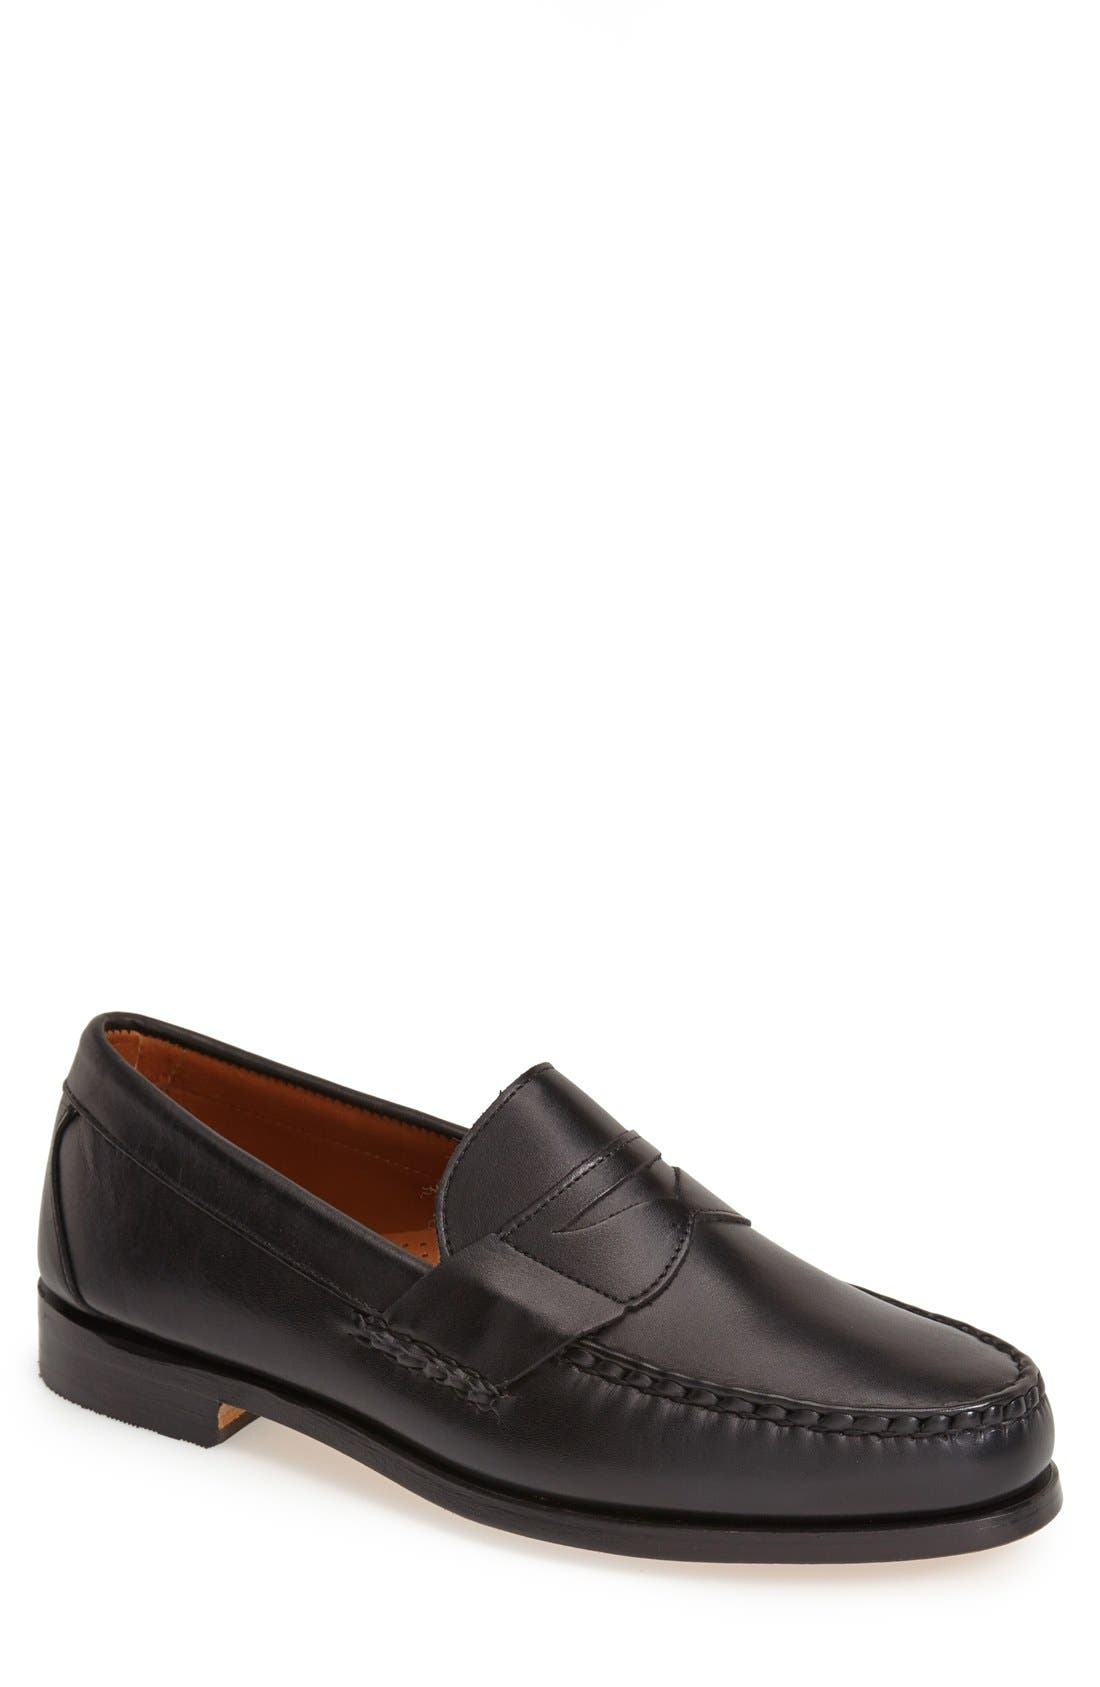 'Cavanaugh' Penny Loafer,                         Main,                         color, BLACK LEATHER